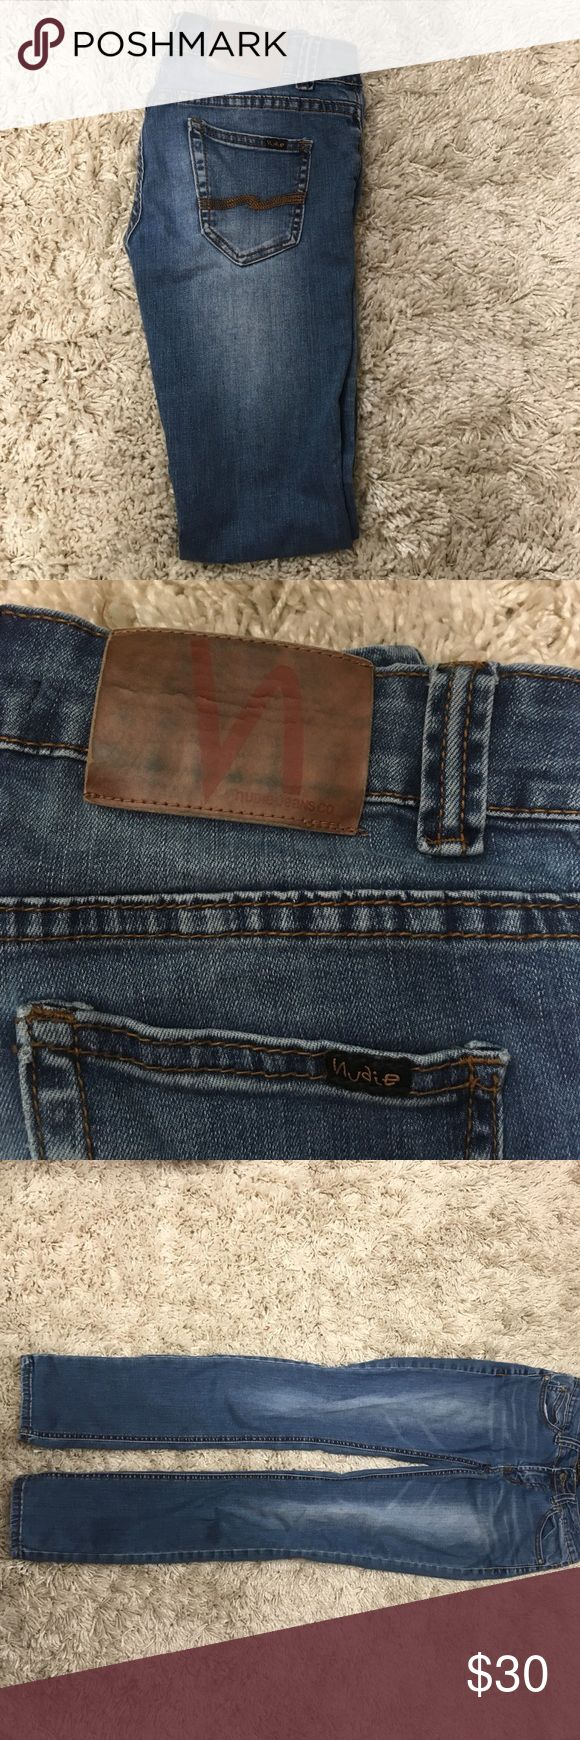 Nudie jeans These jeans are extremely comfortable!! Any questions just ask, will consider trade. Nudie Jeans Jeans Skinny